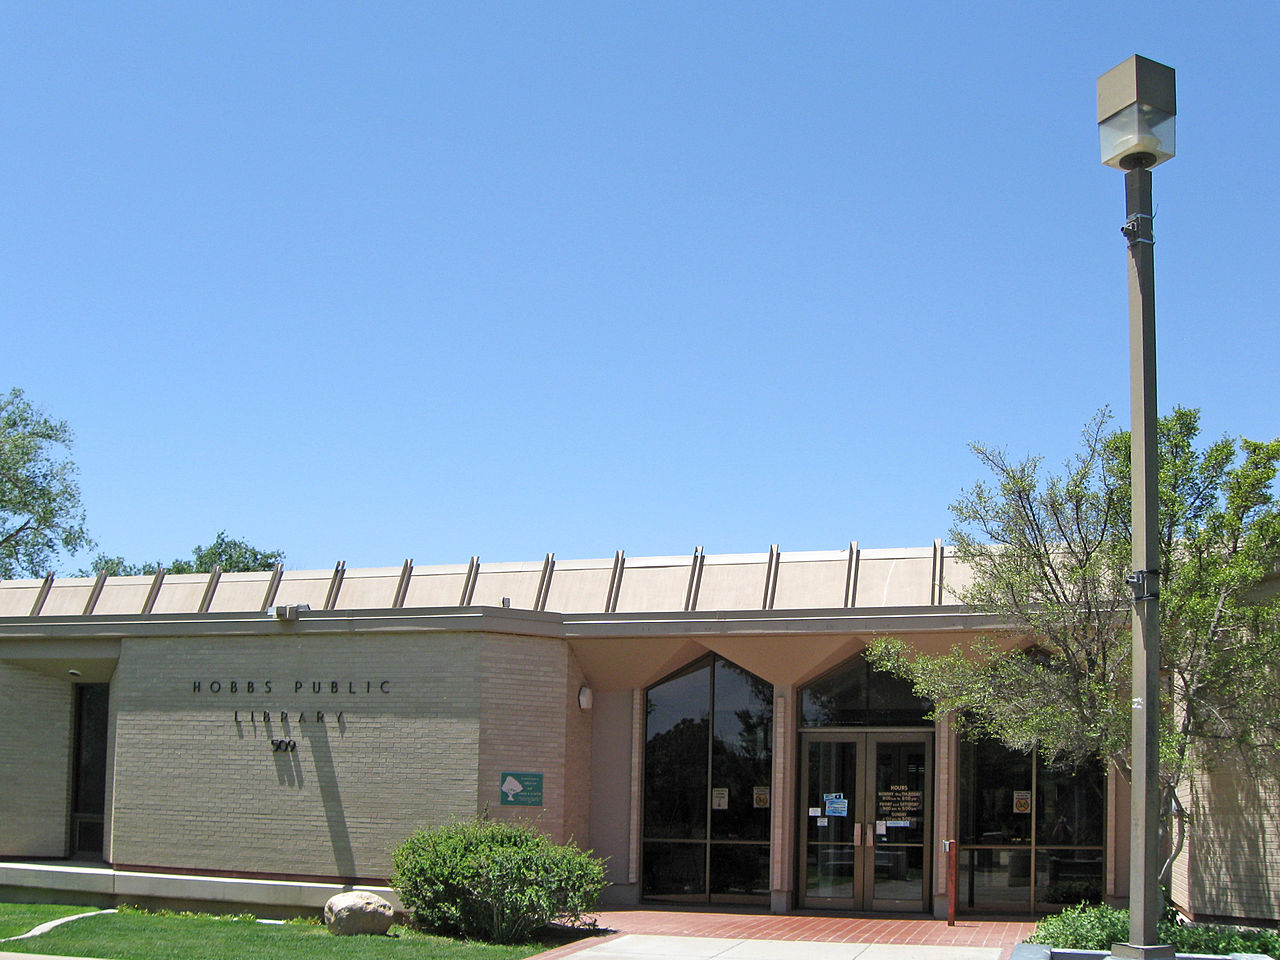 1280px-Hobbs_New_Mexico_Public_Library